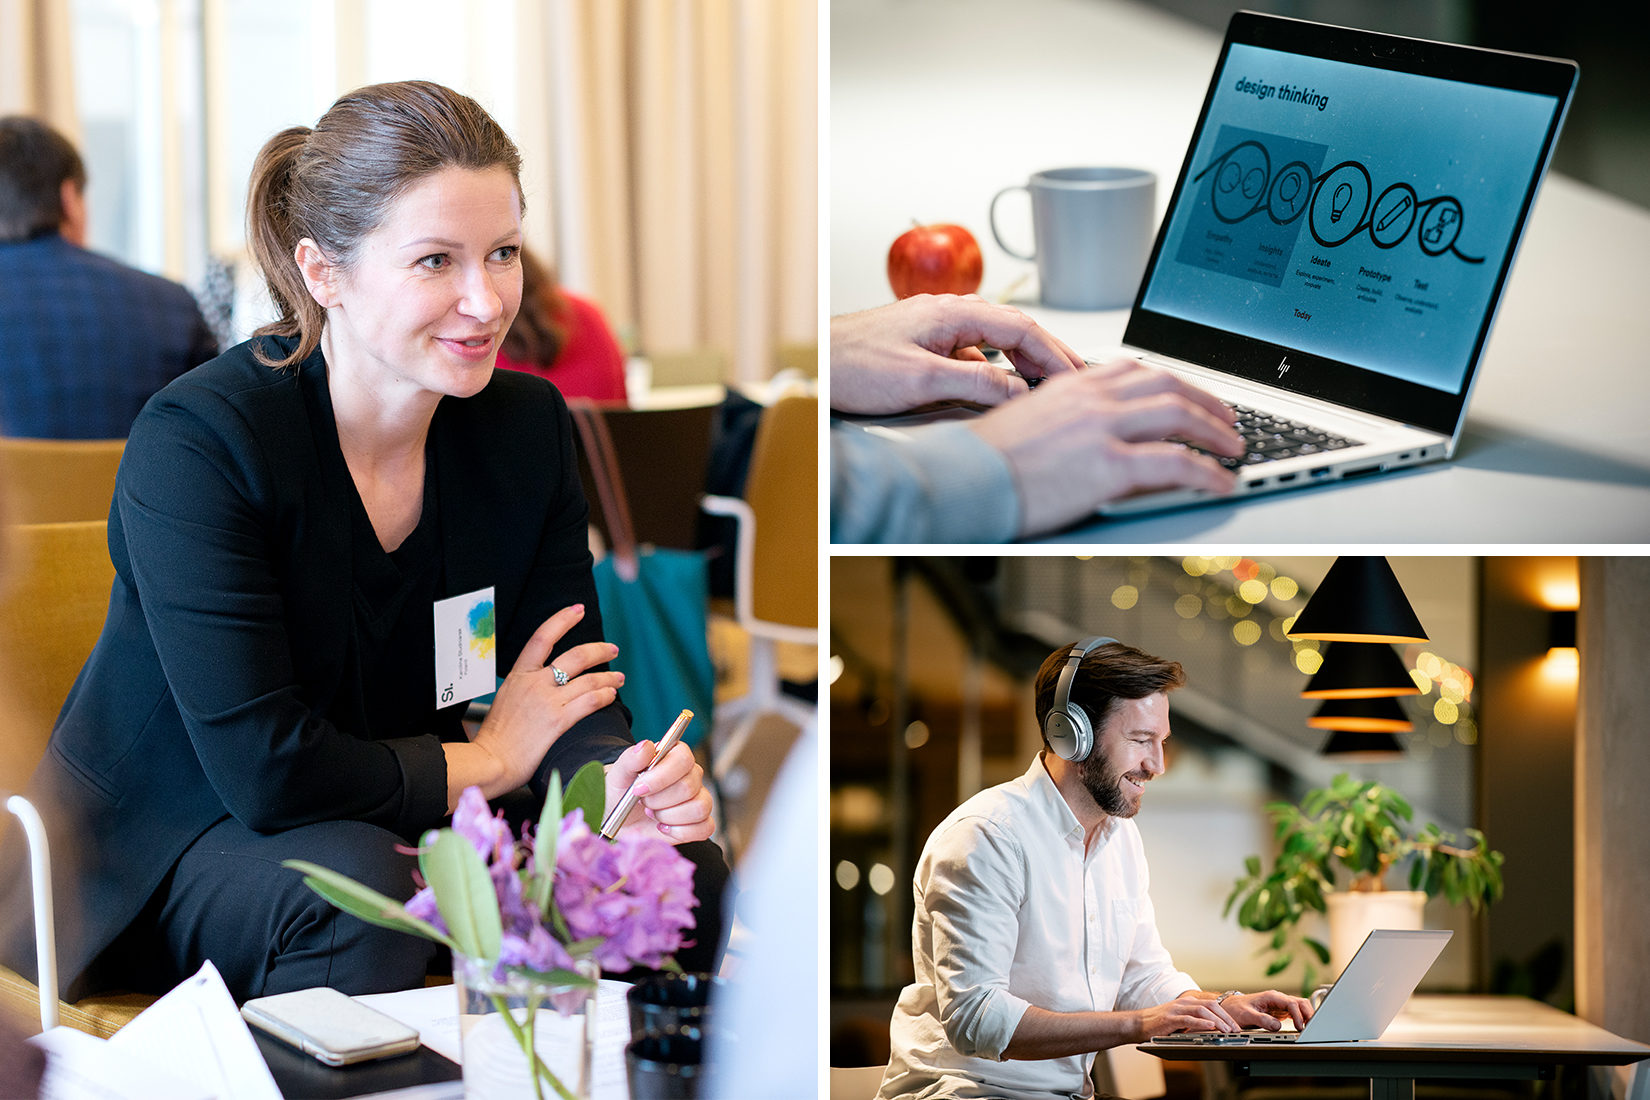 A photo collage showing a woman in a converastion, a man in front of a lap top in an online session and hands typing on a laptop.